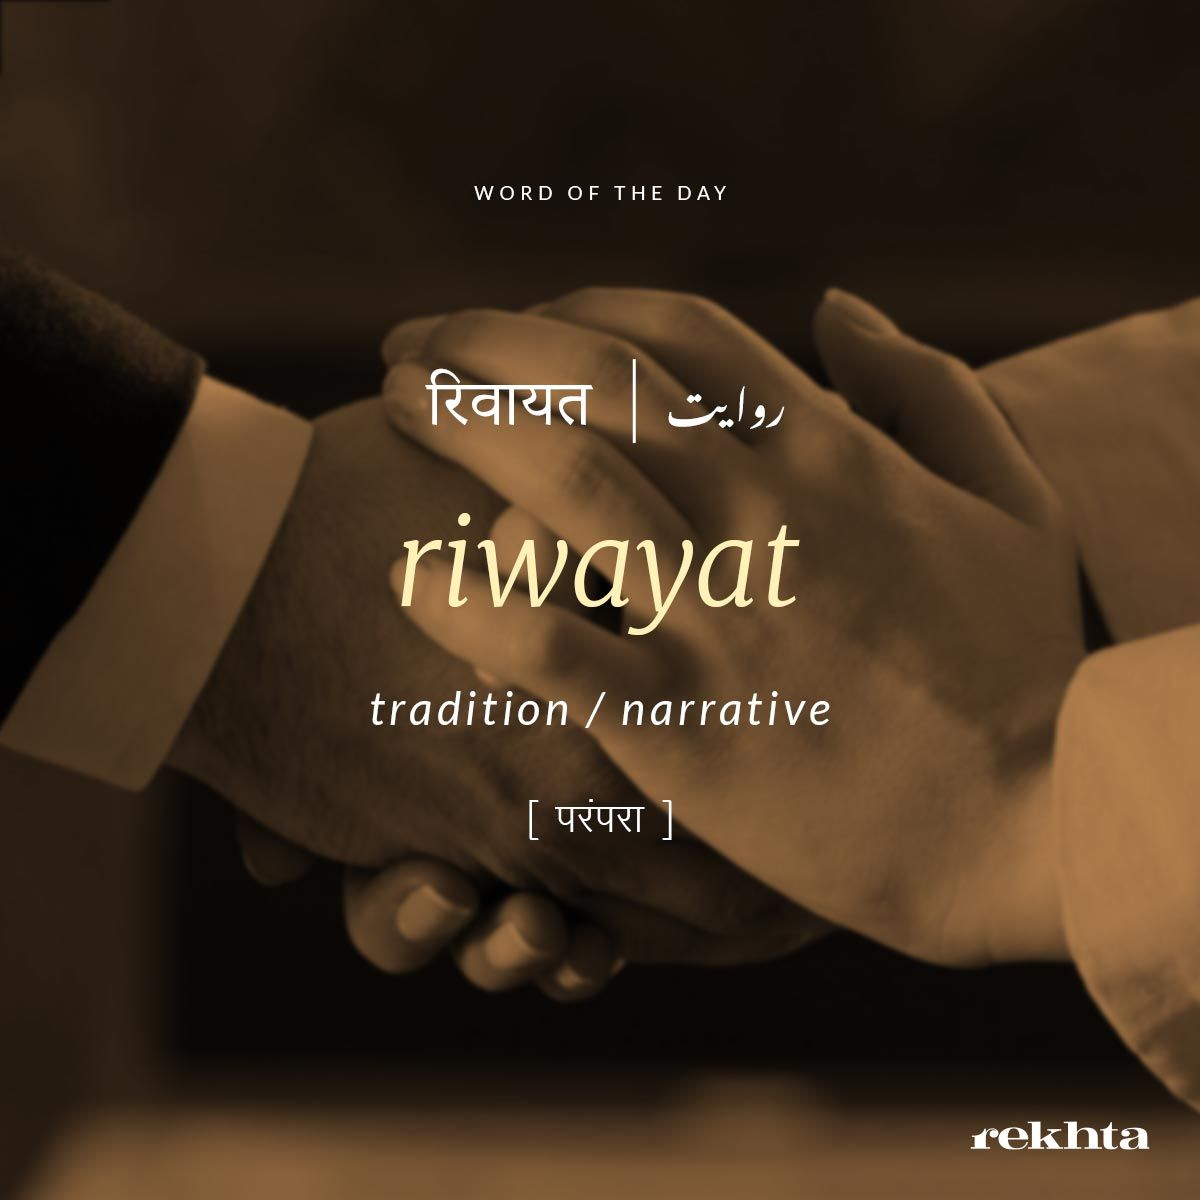 Pin By Rekhta Foundation On Urdu Word Of The Day